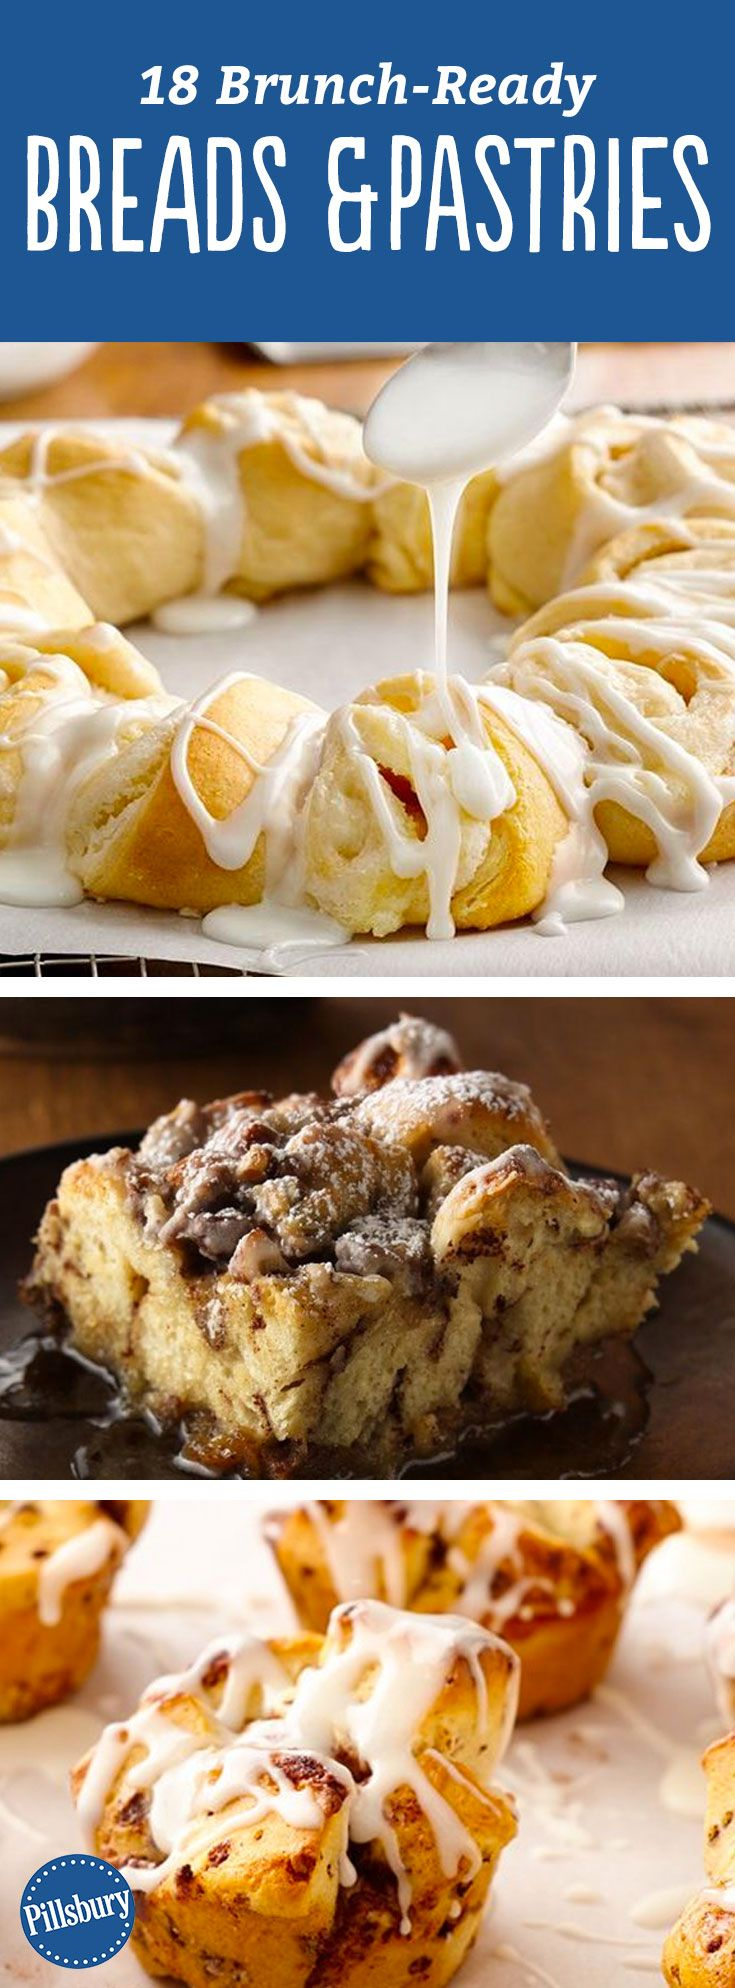 18 Brunch-Ready Breads + Pastries: Delicious monkey breads, DIY pastries, breakfast breads and more will satisfy every sweet tooth at your table. Basically, this is a guide to how to eat dessert for breakfast. :)